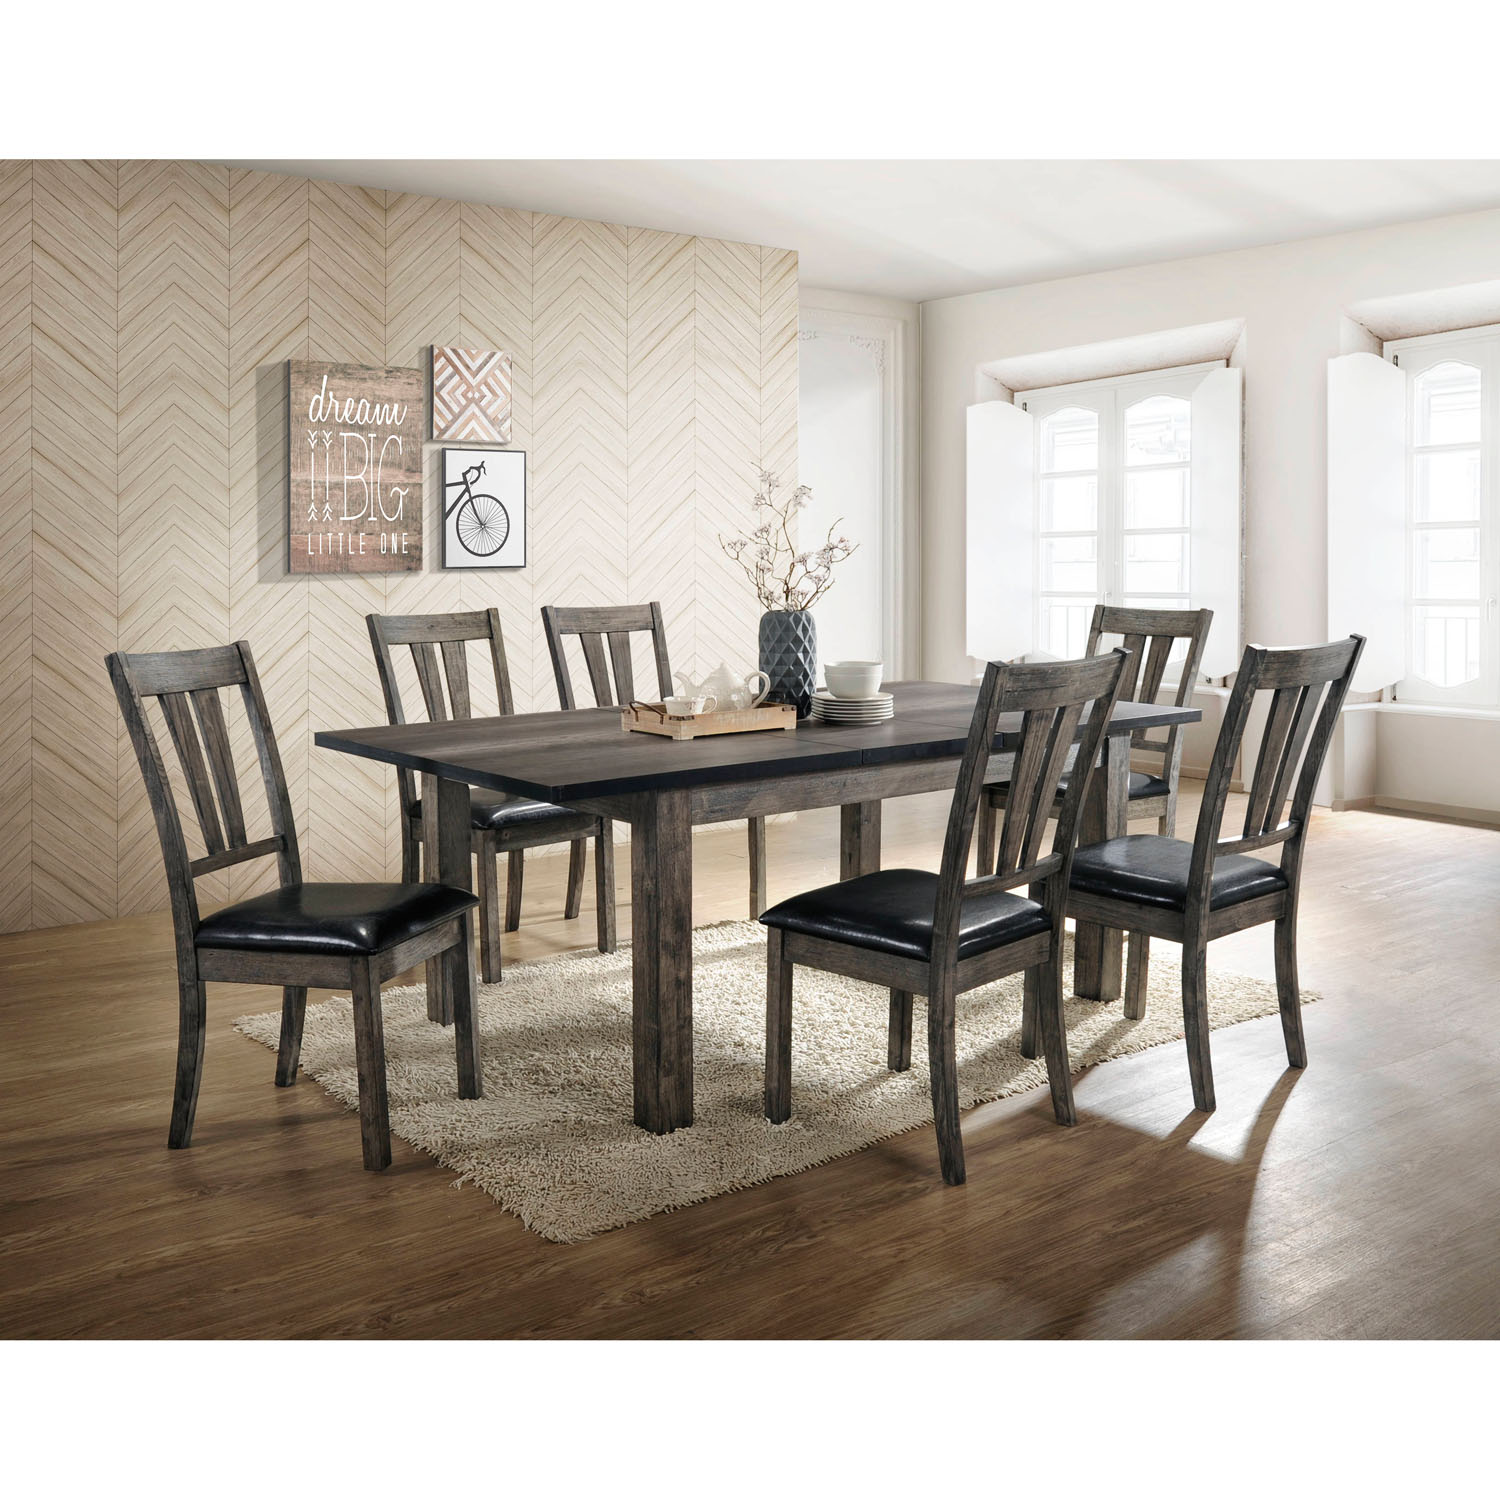 Cambridge Drexel 7 Piece Dining Set With Six Cushioned Chairs